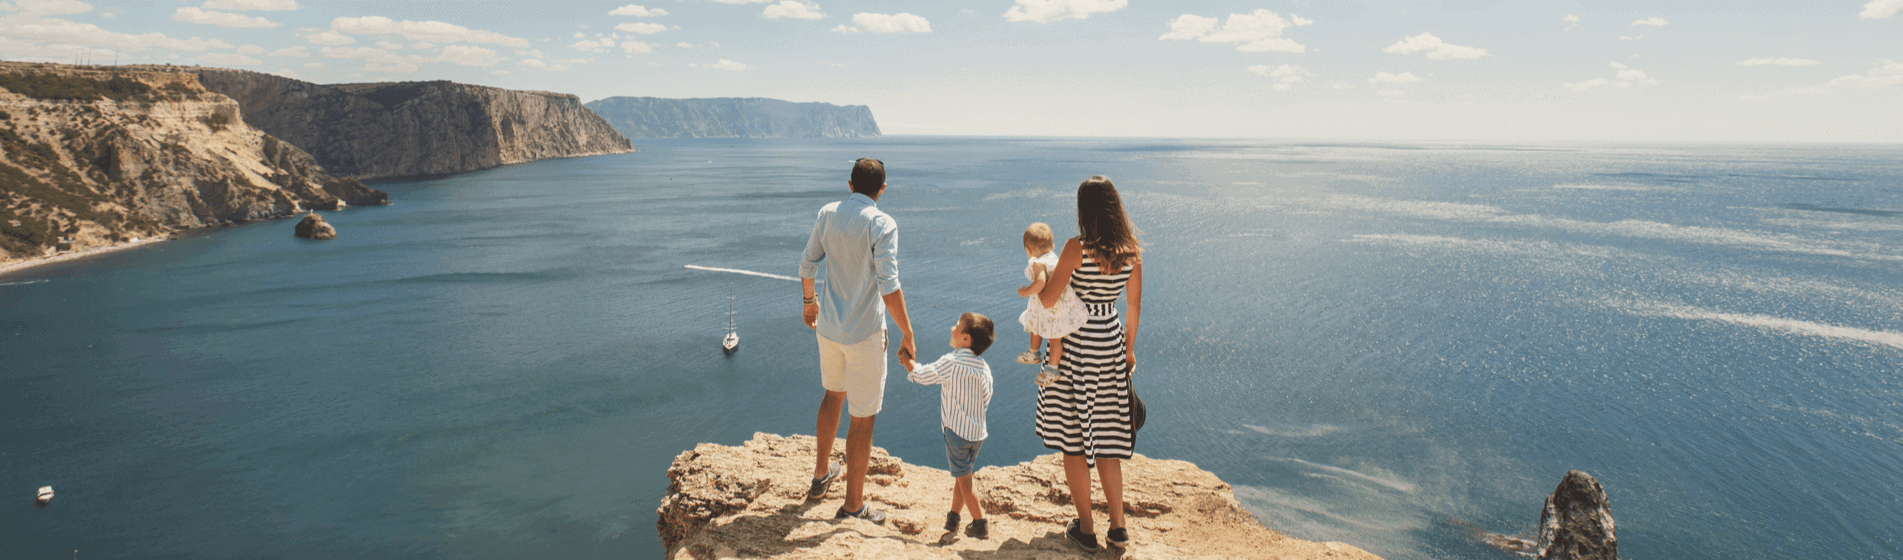 Living a Nomadic Lifestyle with Children and Family